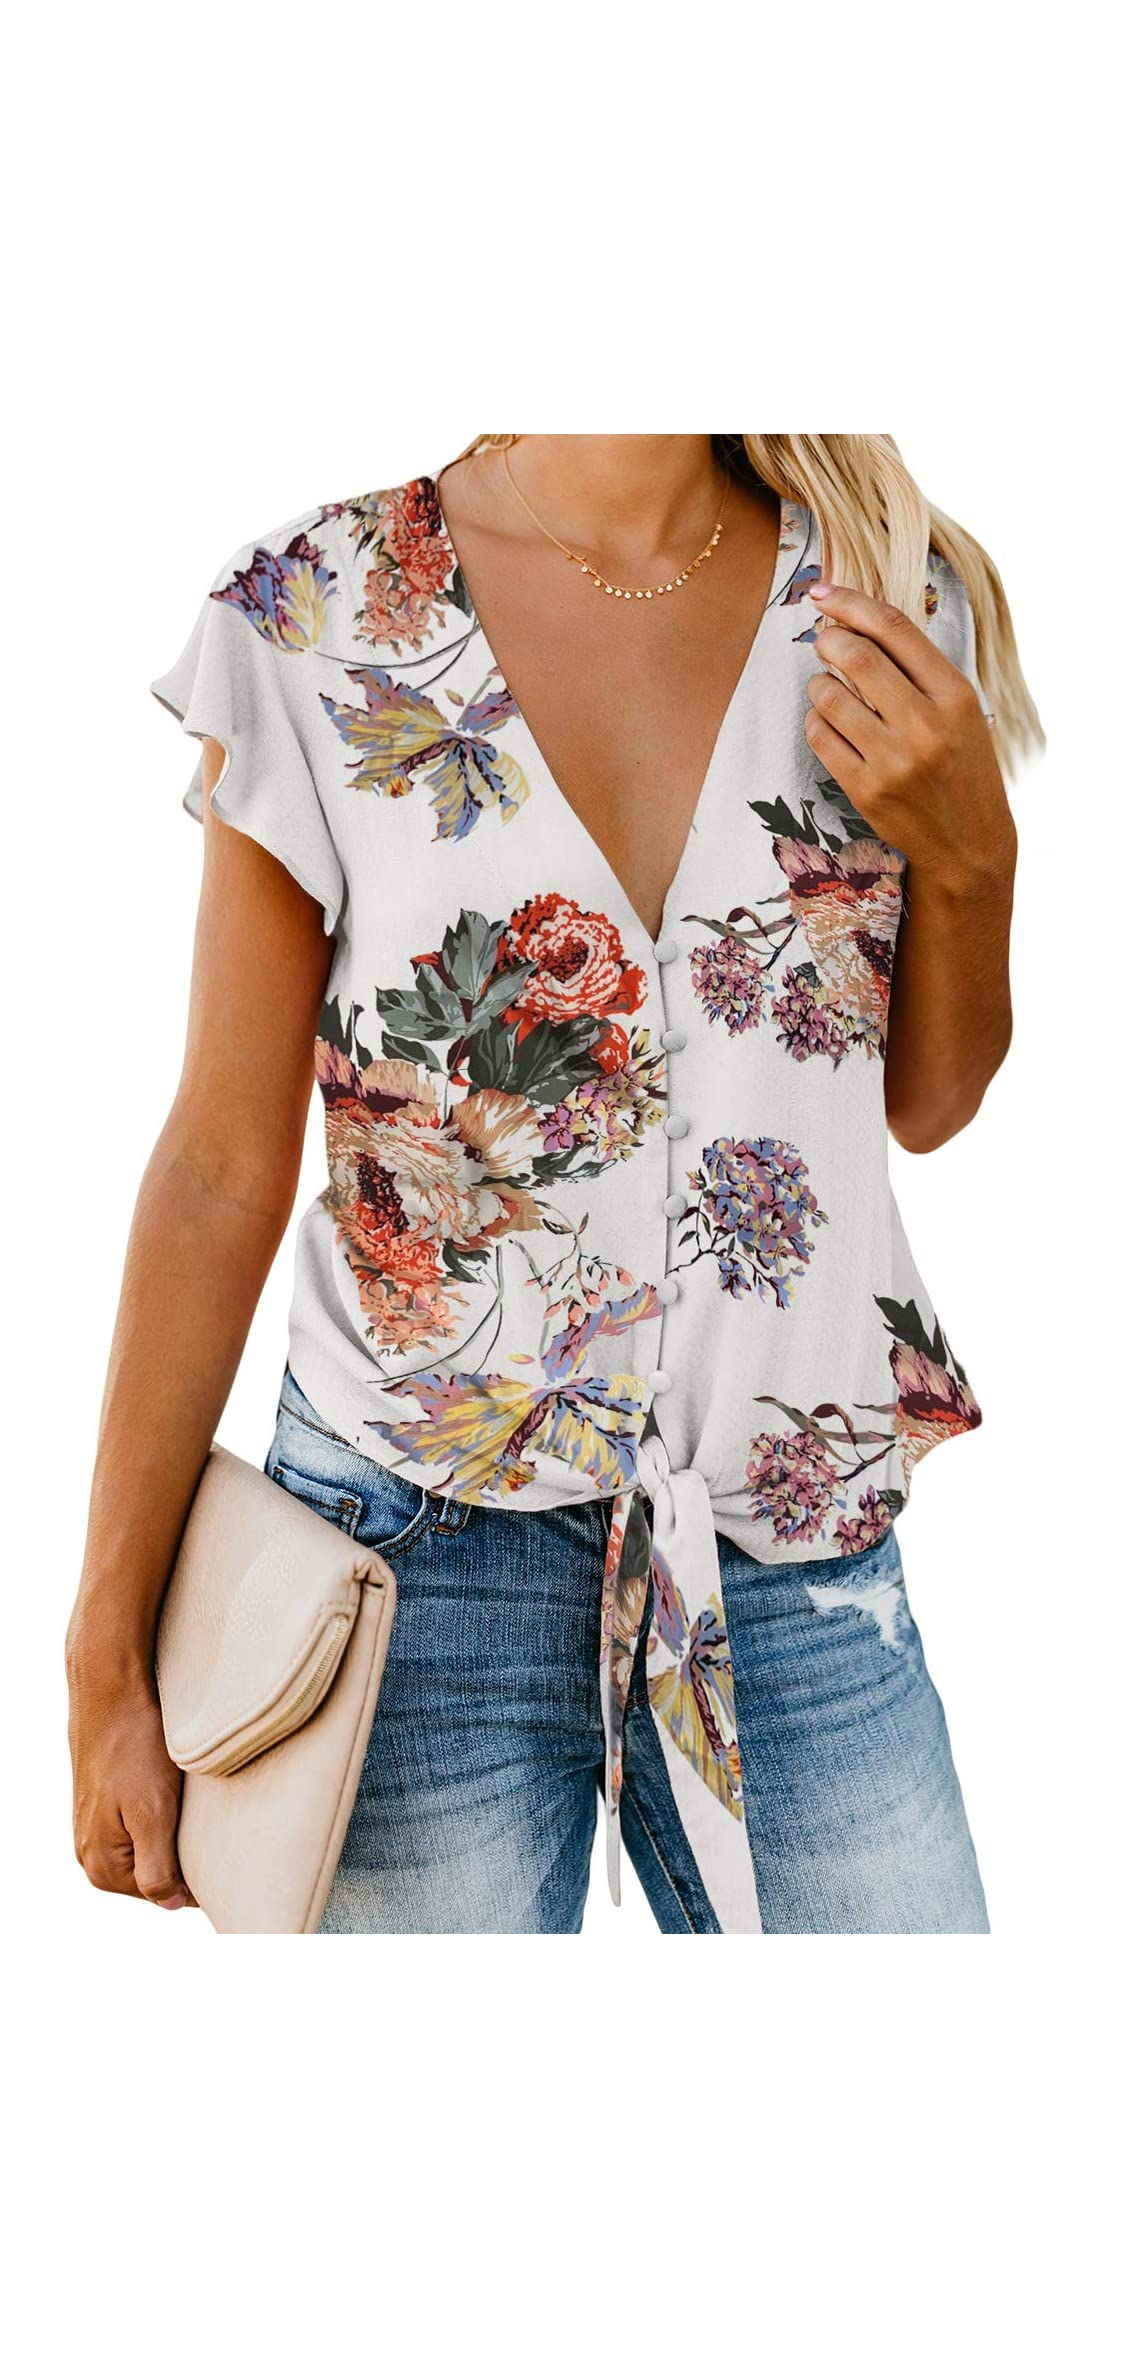 Women V Neck Floral Print Tops Short Sleeve Button Down